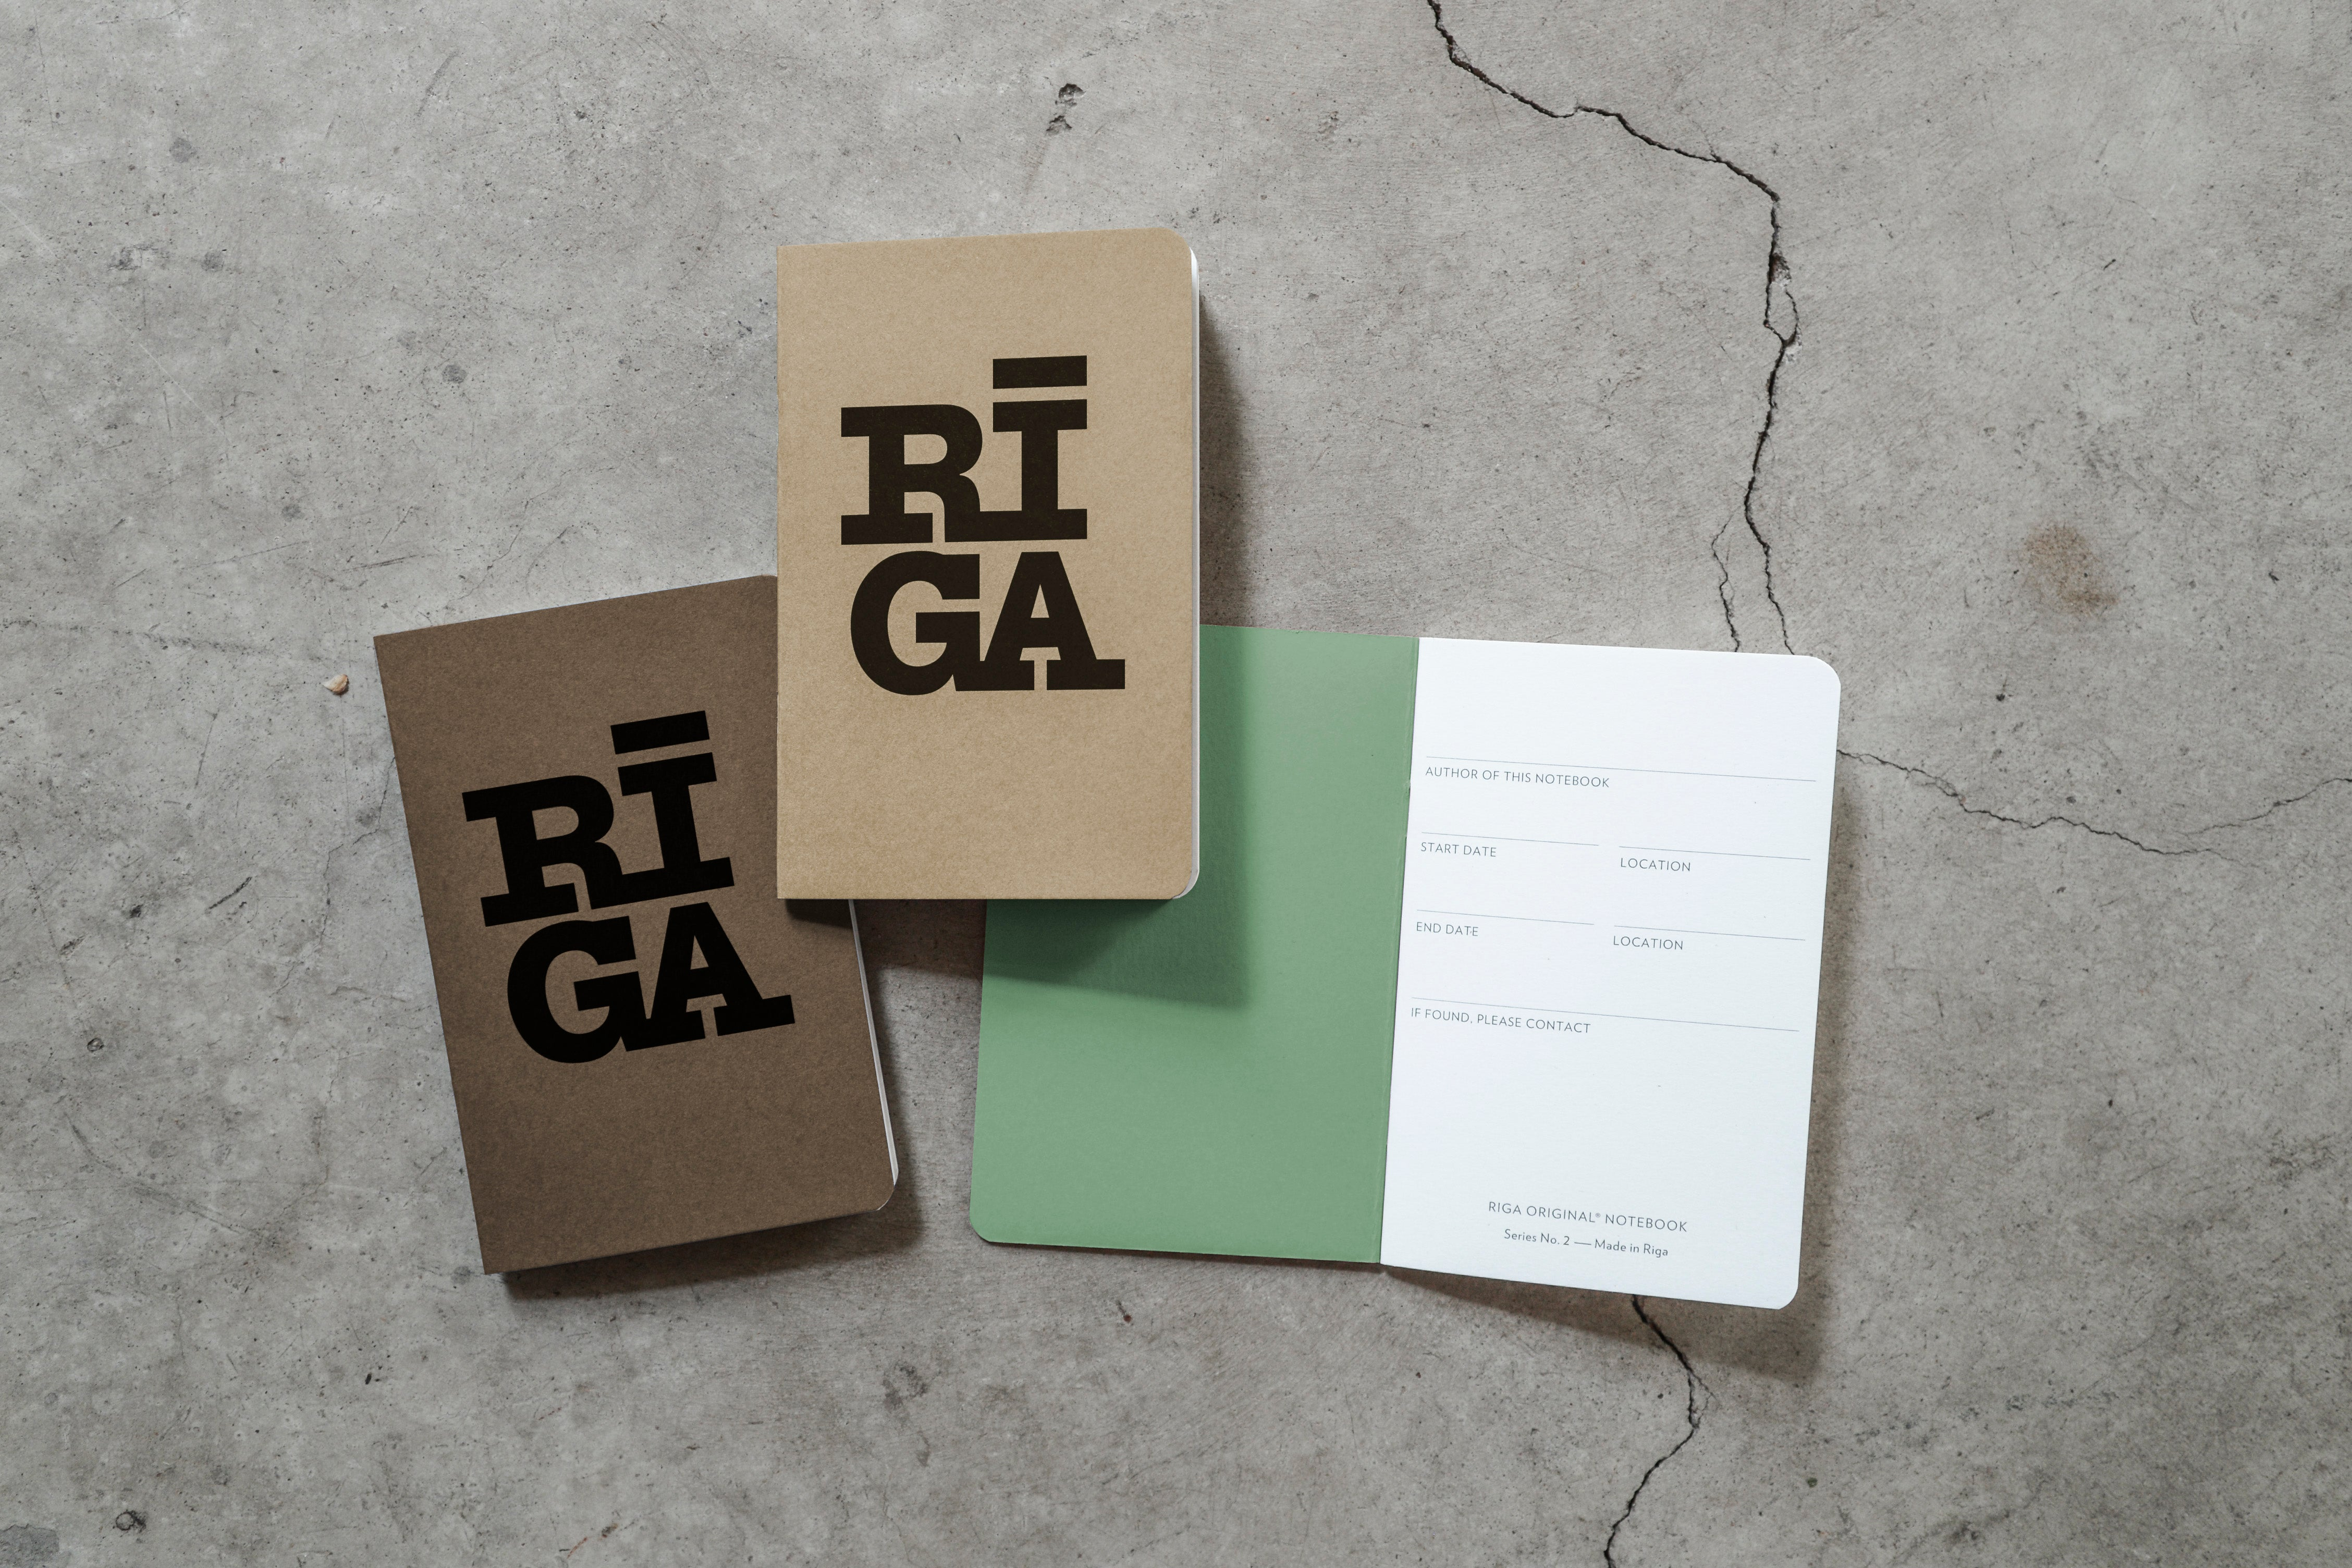 Notebook — Riga Original® (Mixed, 3-pack)